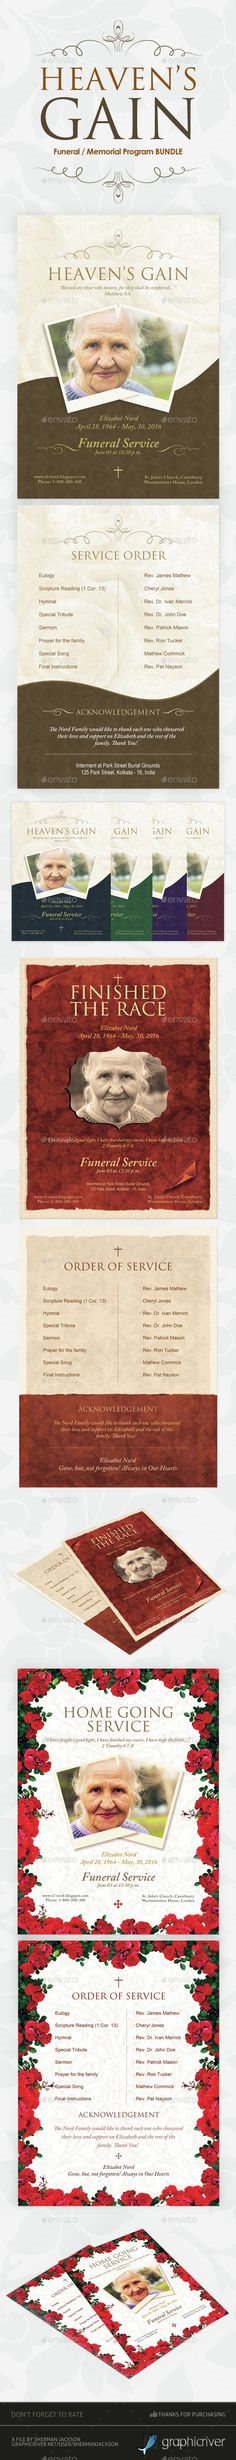 Funeral / Memorial Program Templates  BUNDLE V.2 — Photoshop PSD #church #funeral template • Available here → https://graphicriver.net/item/funeral-memorial-program-templates-bundle-v2/14693405?ref=pxcr